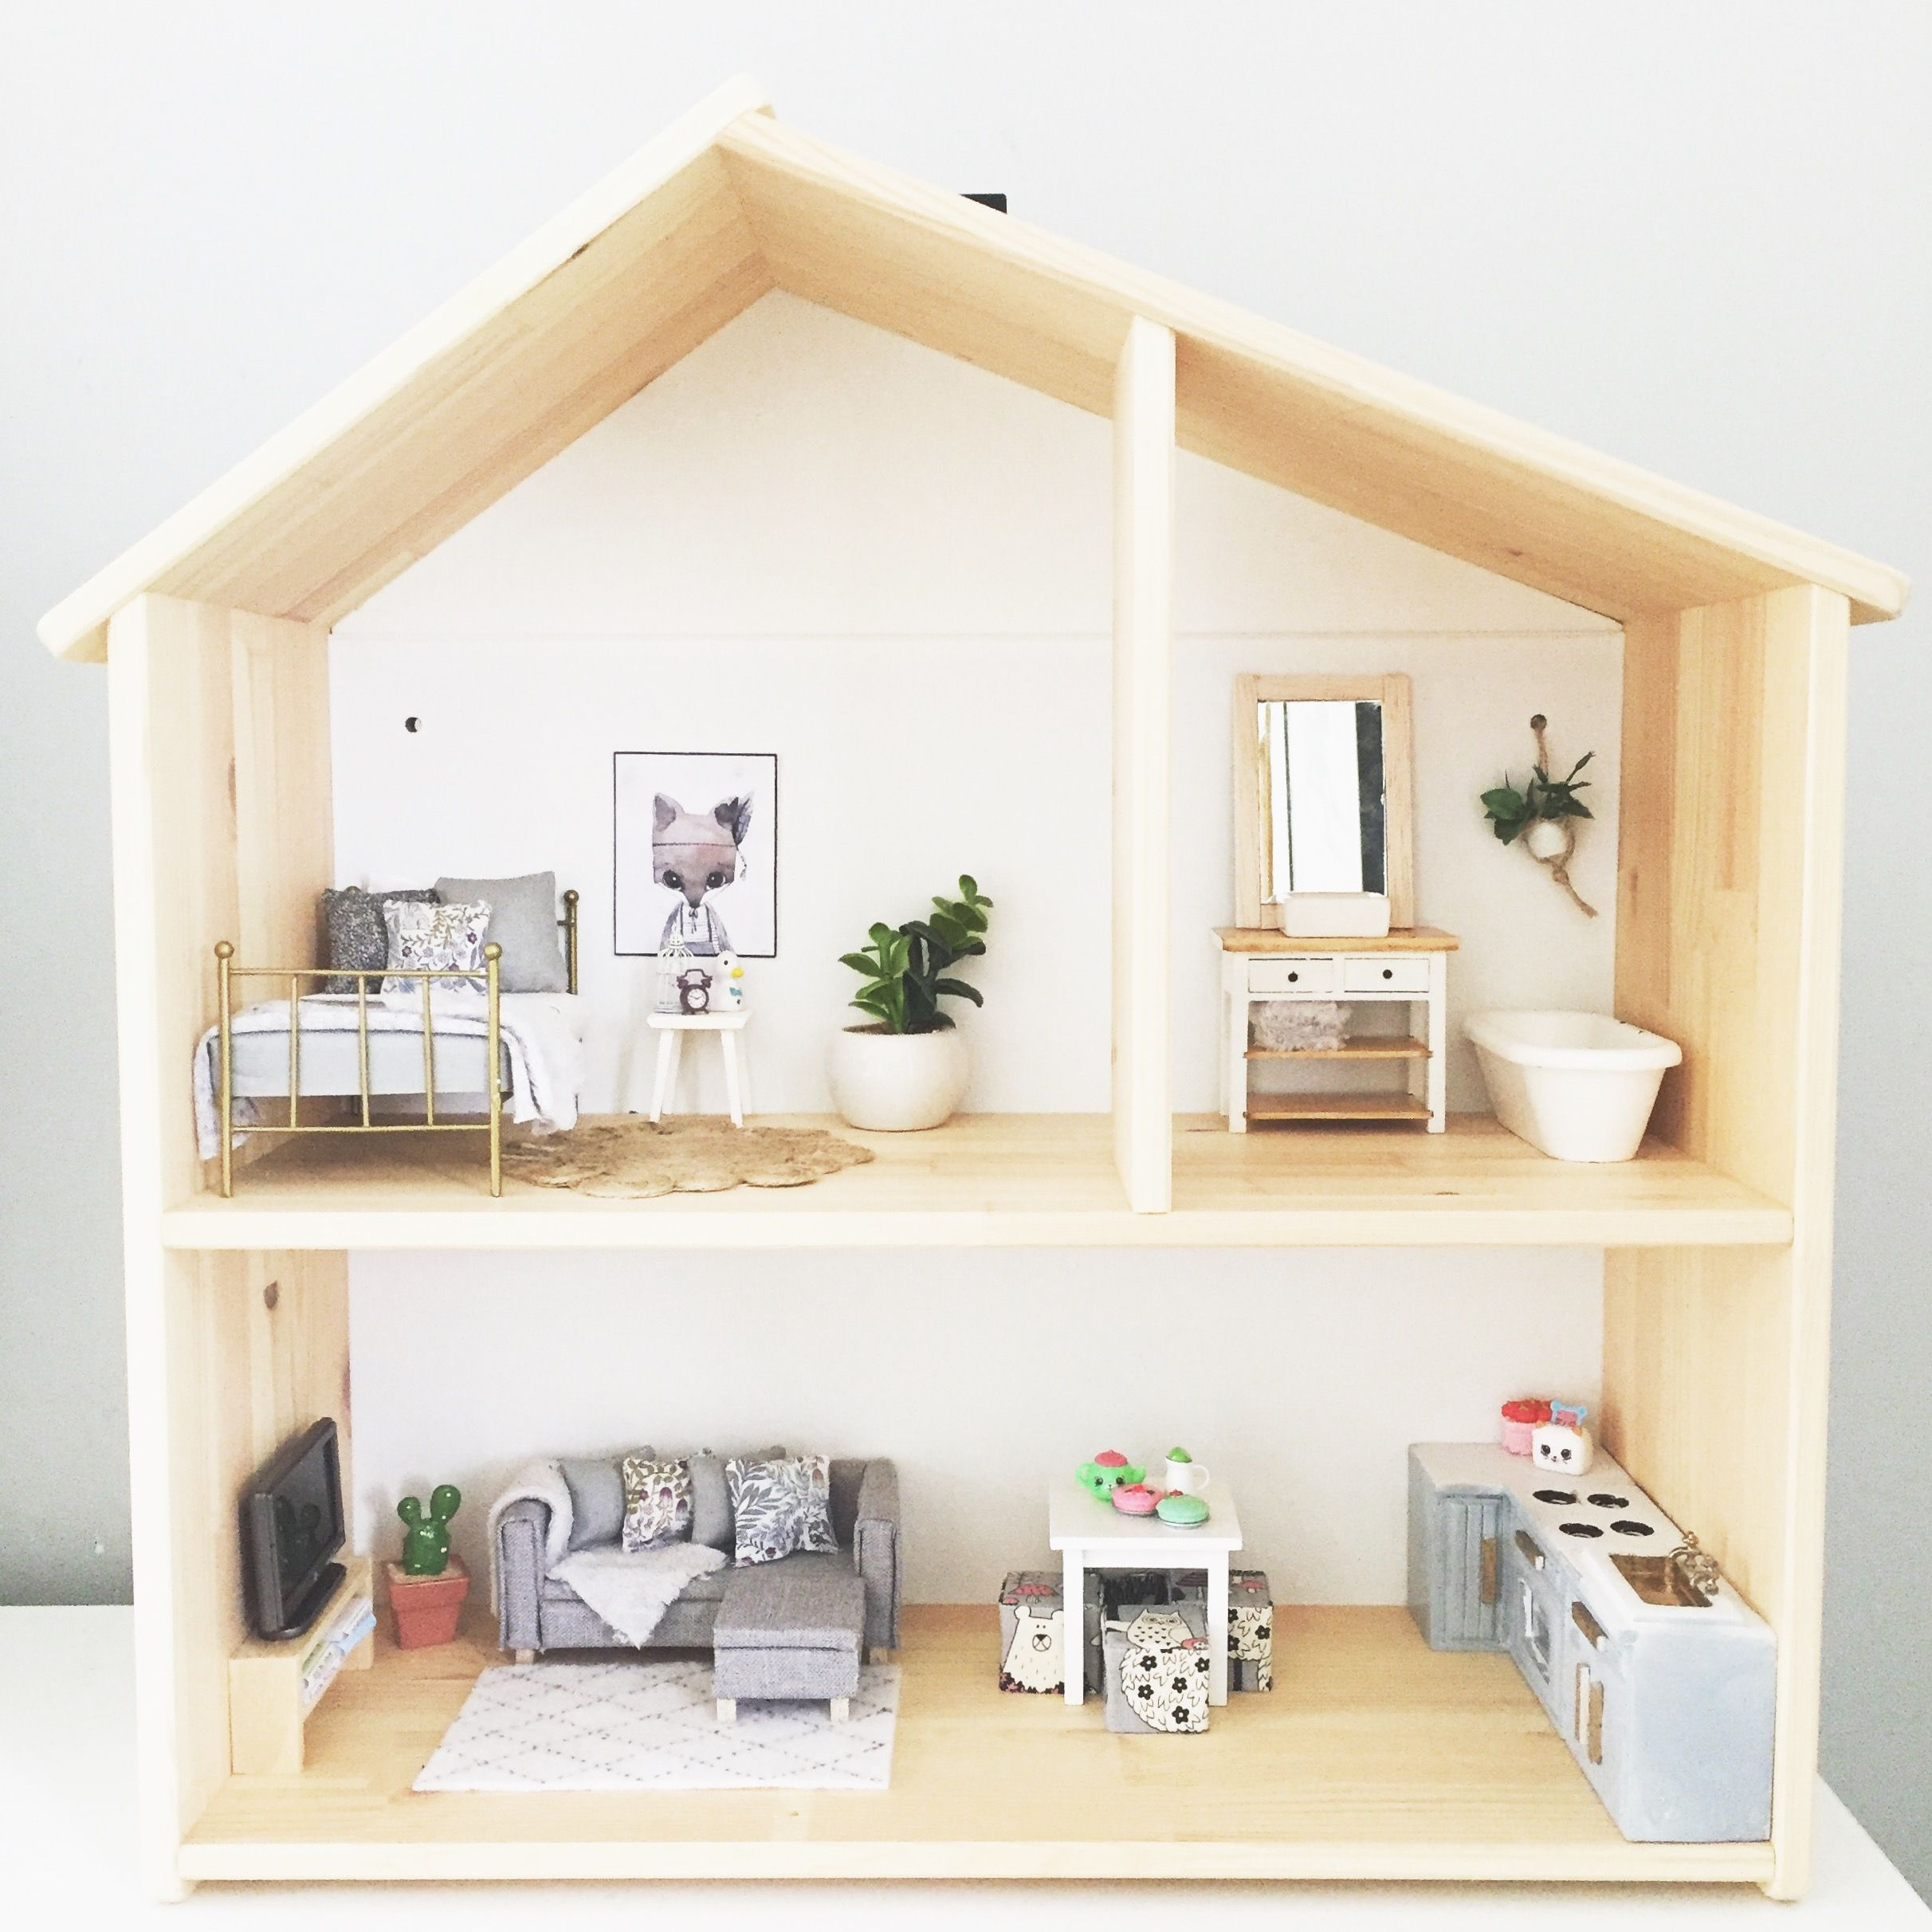 This Is An Example Of Scale And Proportion Because The Items Inside Of This  Doll Sized House Are In Relationship To The Doll House Itself.